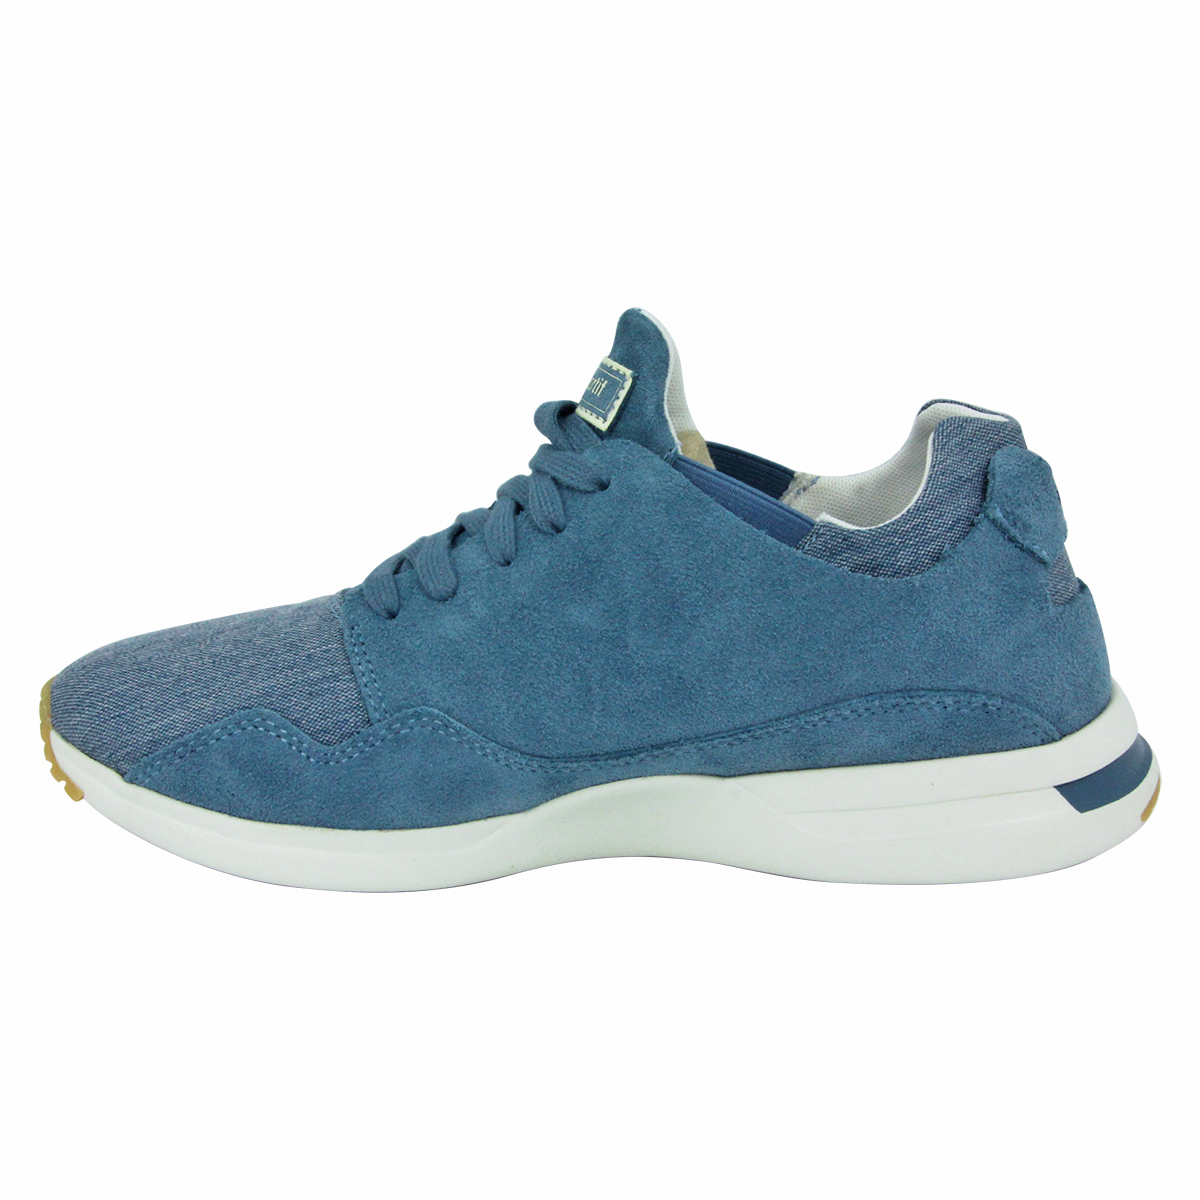 4c3fa2d7013 Le Coq Sportif PURE SUMMER CRAFT Chaussures Mode Sneakers Homme 3 3 sur 6  ...